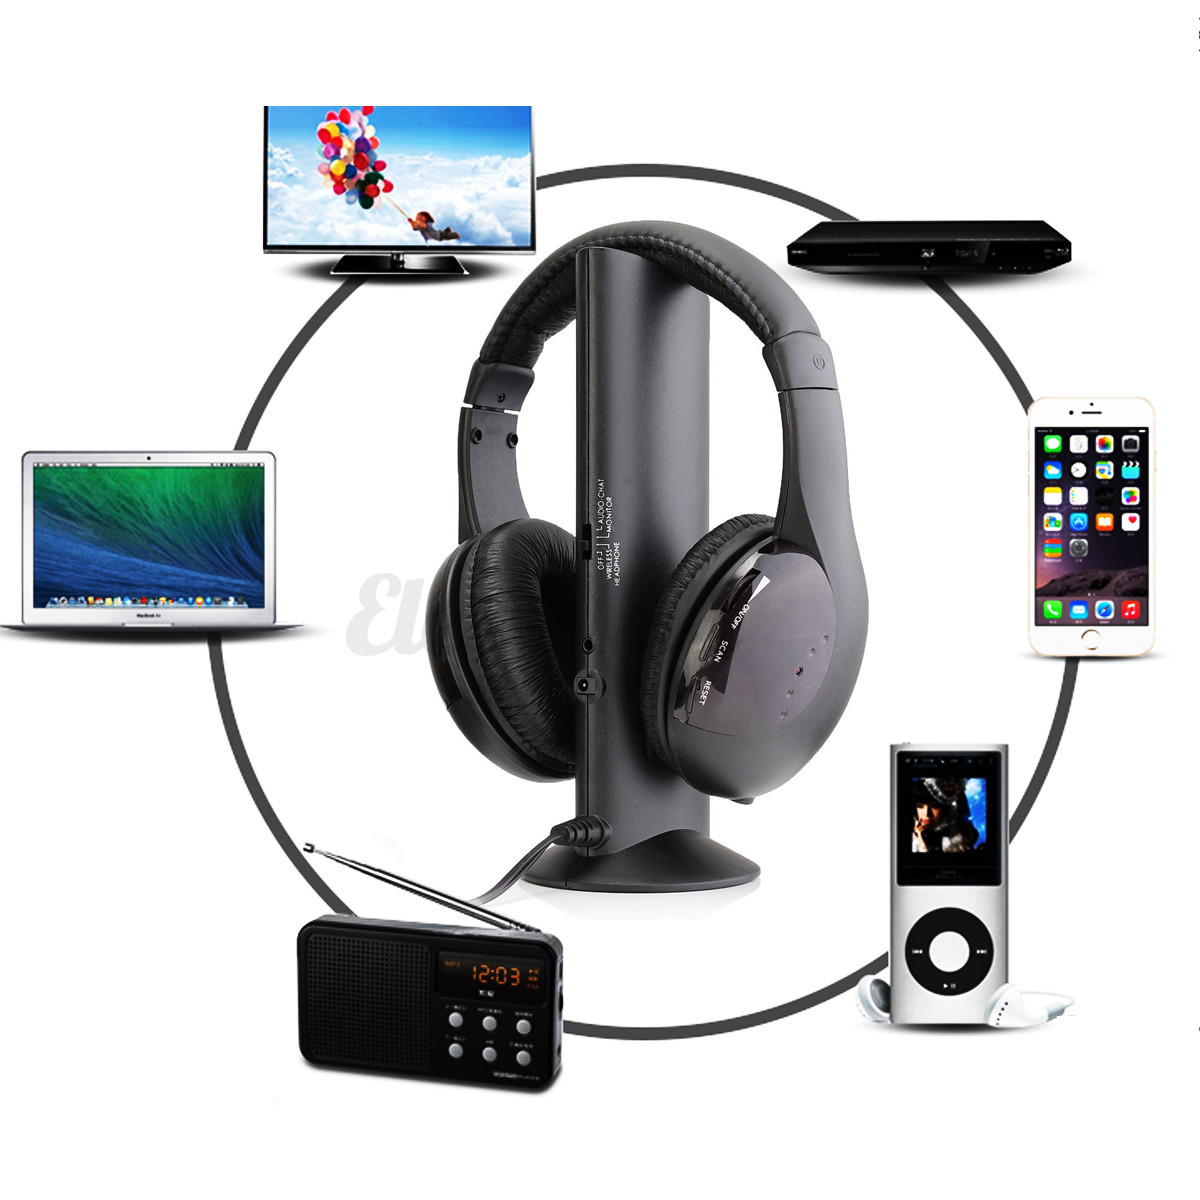 5 en1 sans fil ecouteur casque audio hifi moniteur fm radio mic pr pc tv dvd mp4 ebay. Black Bedroom Furniture Sets. Home Design Ideas